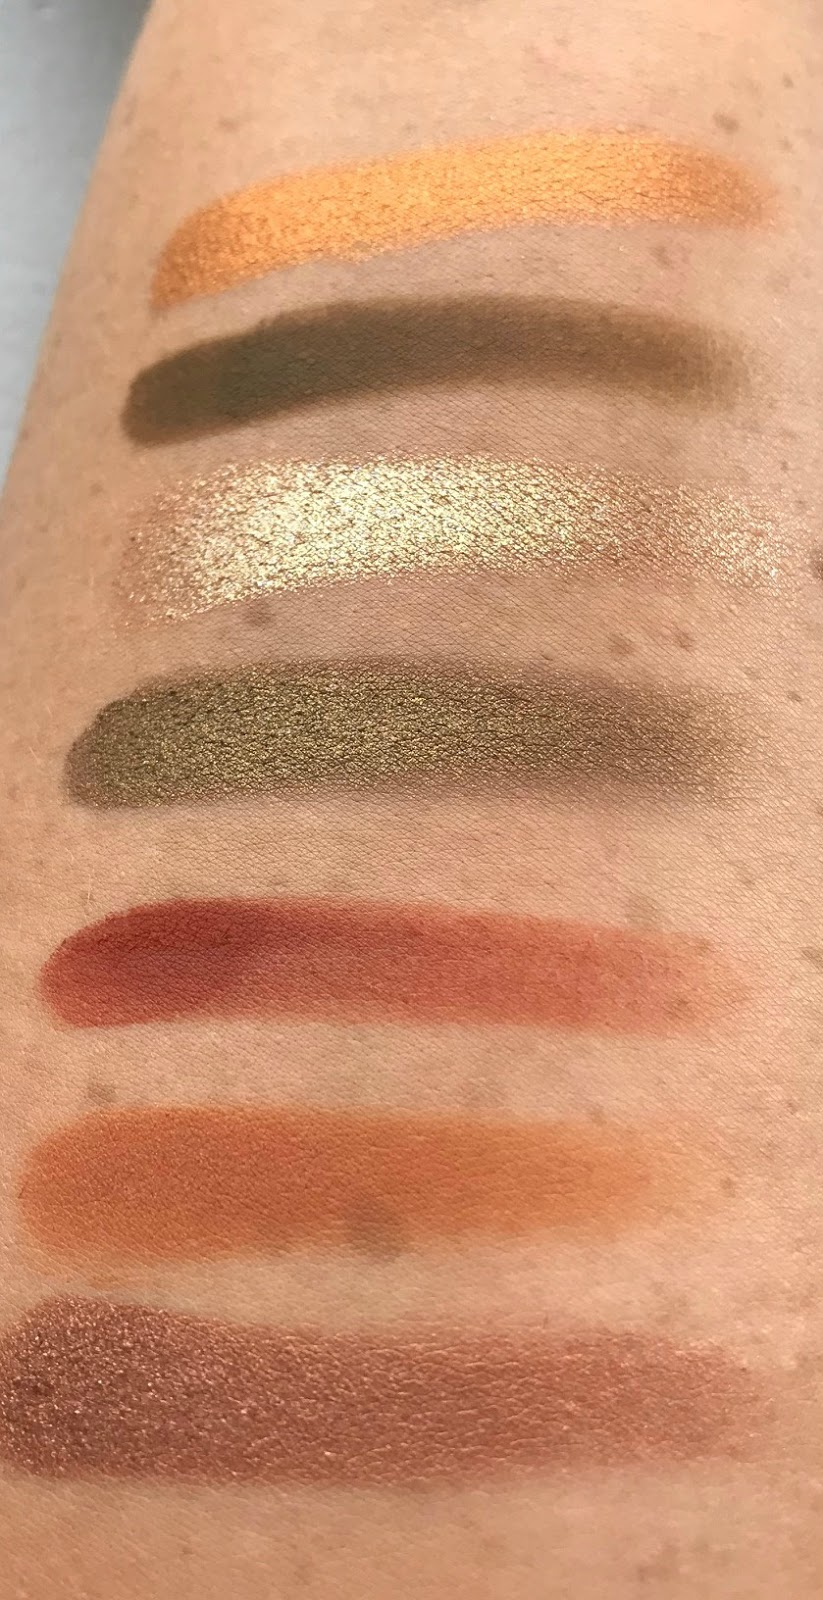 Natasha Denona Metropolis Palette Review & Swatches, Natasha Denona Metropolis Palette - worth the hype/price?